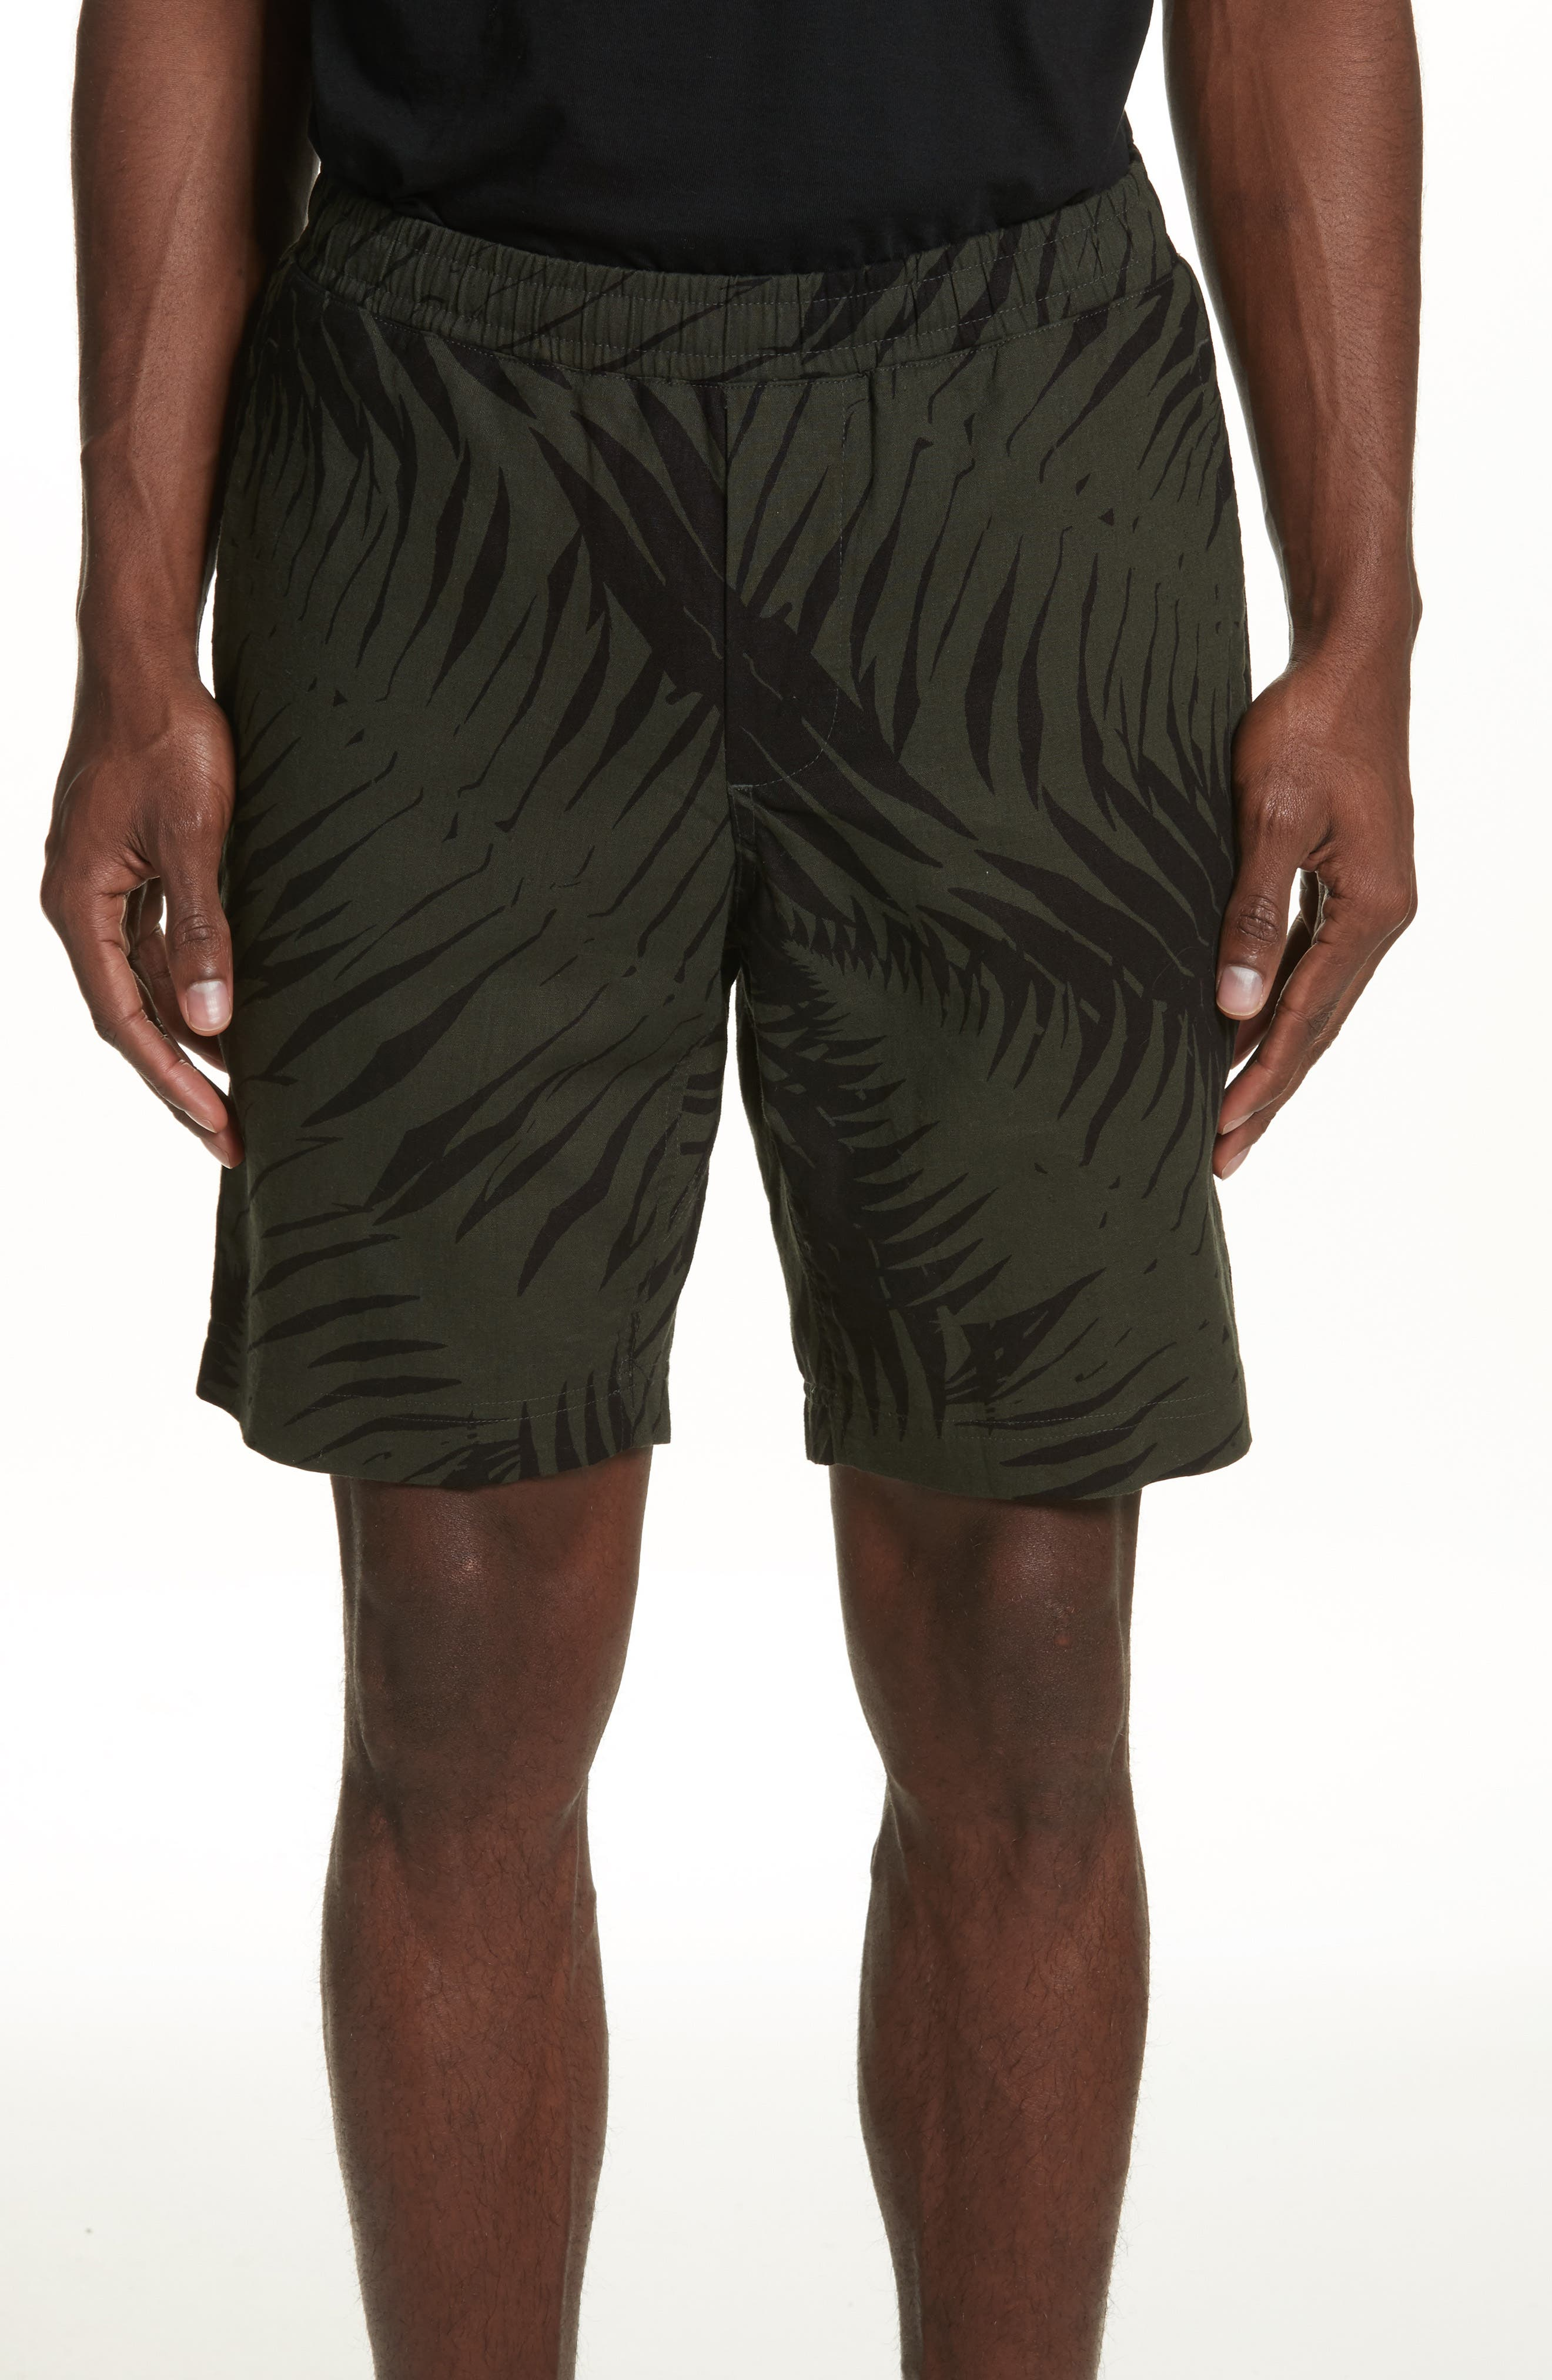 Sword Fern Patrol Shorts,                             Main thumbnail 1, color,                             Jungle Green